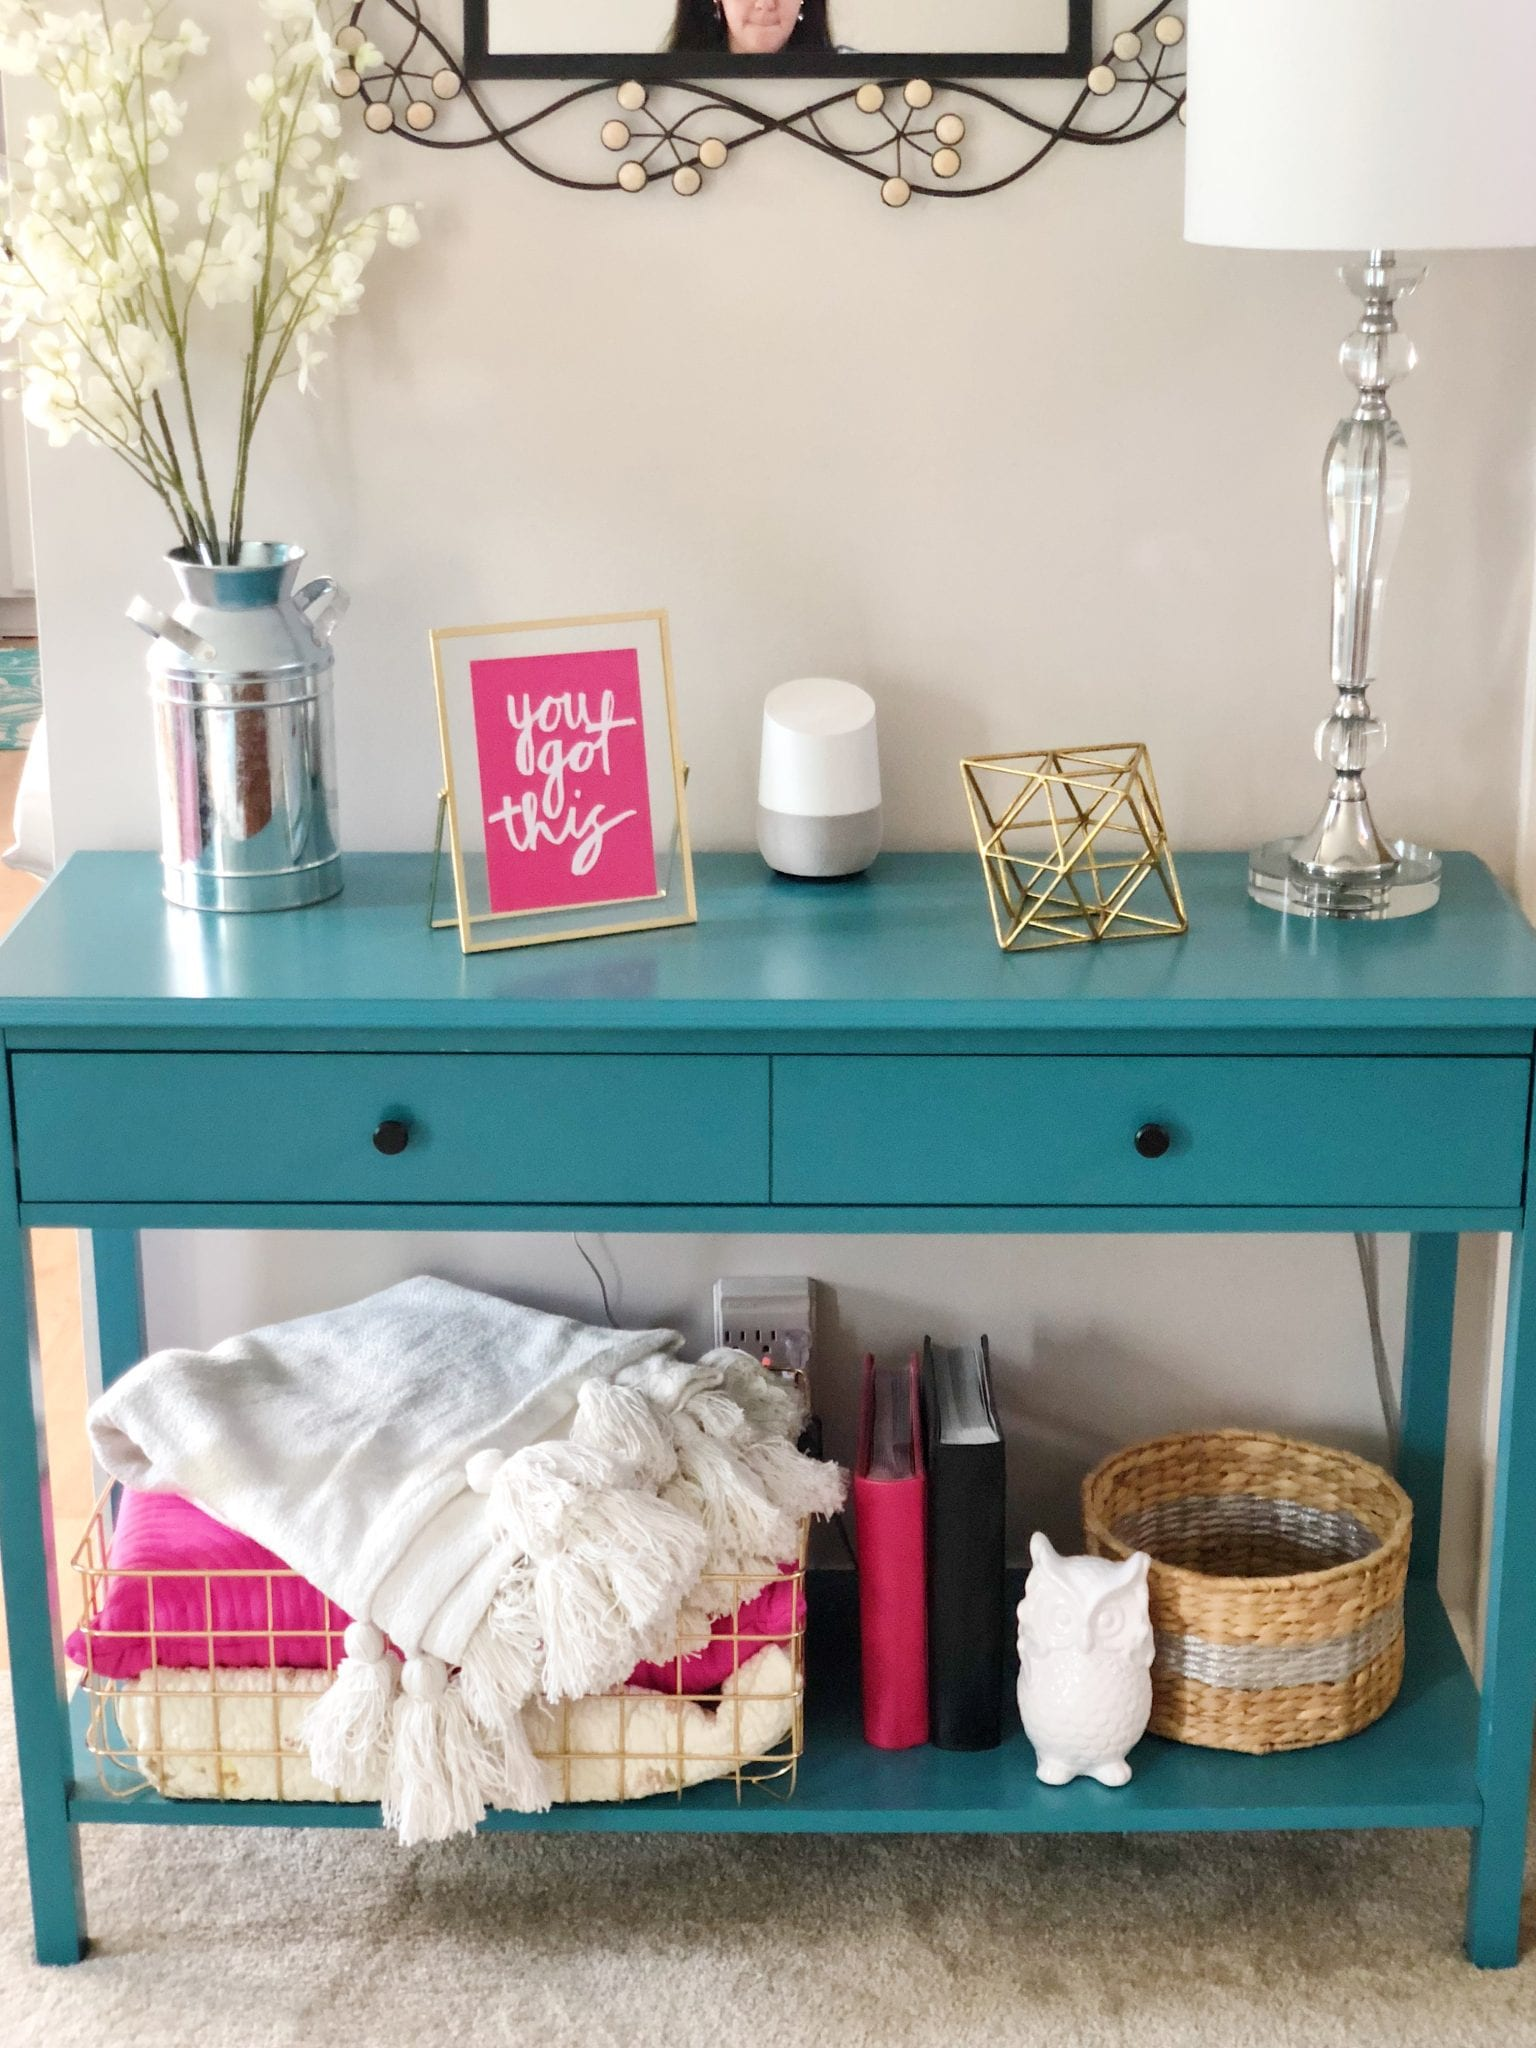 Living Room Refresh for $150 | Bright on a Budget